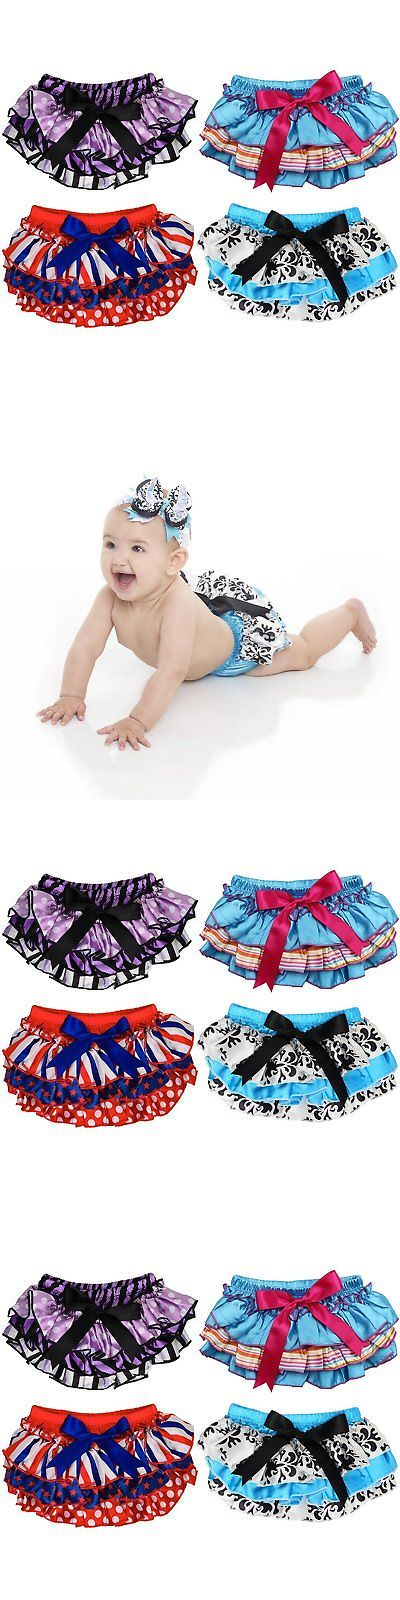 Diaper Covers 26267: Judanzy Satin Baby Ruffle Bloomers Diaper Covers In A Variety Of Colors And Sizes -> BUY IT NOW ONLY: $66.07 on eBay!